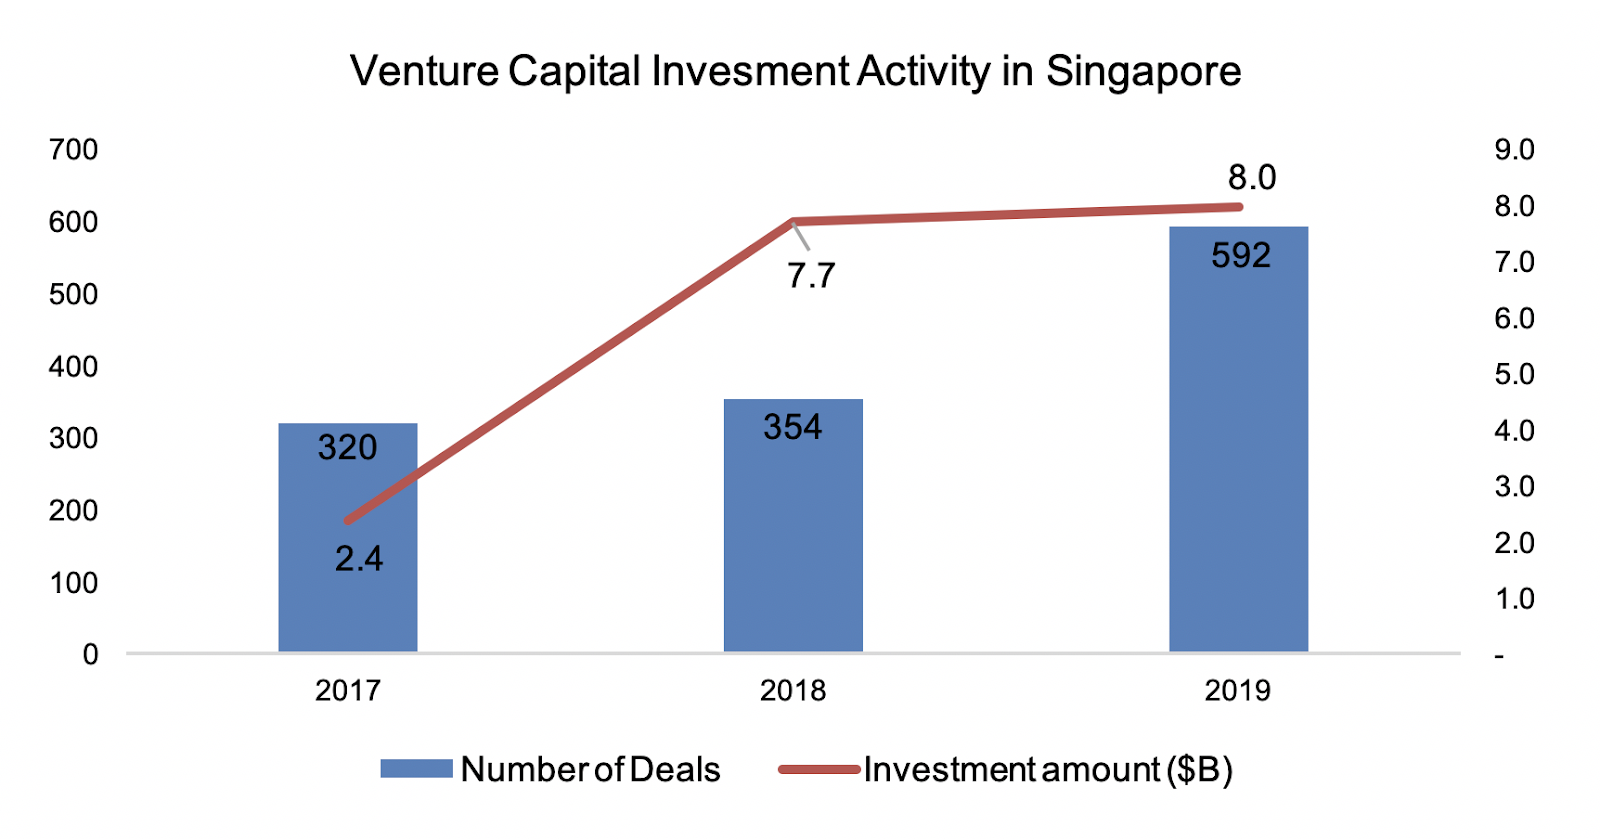 VC activity in Singapore has grown sharply over recent years